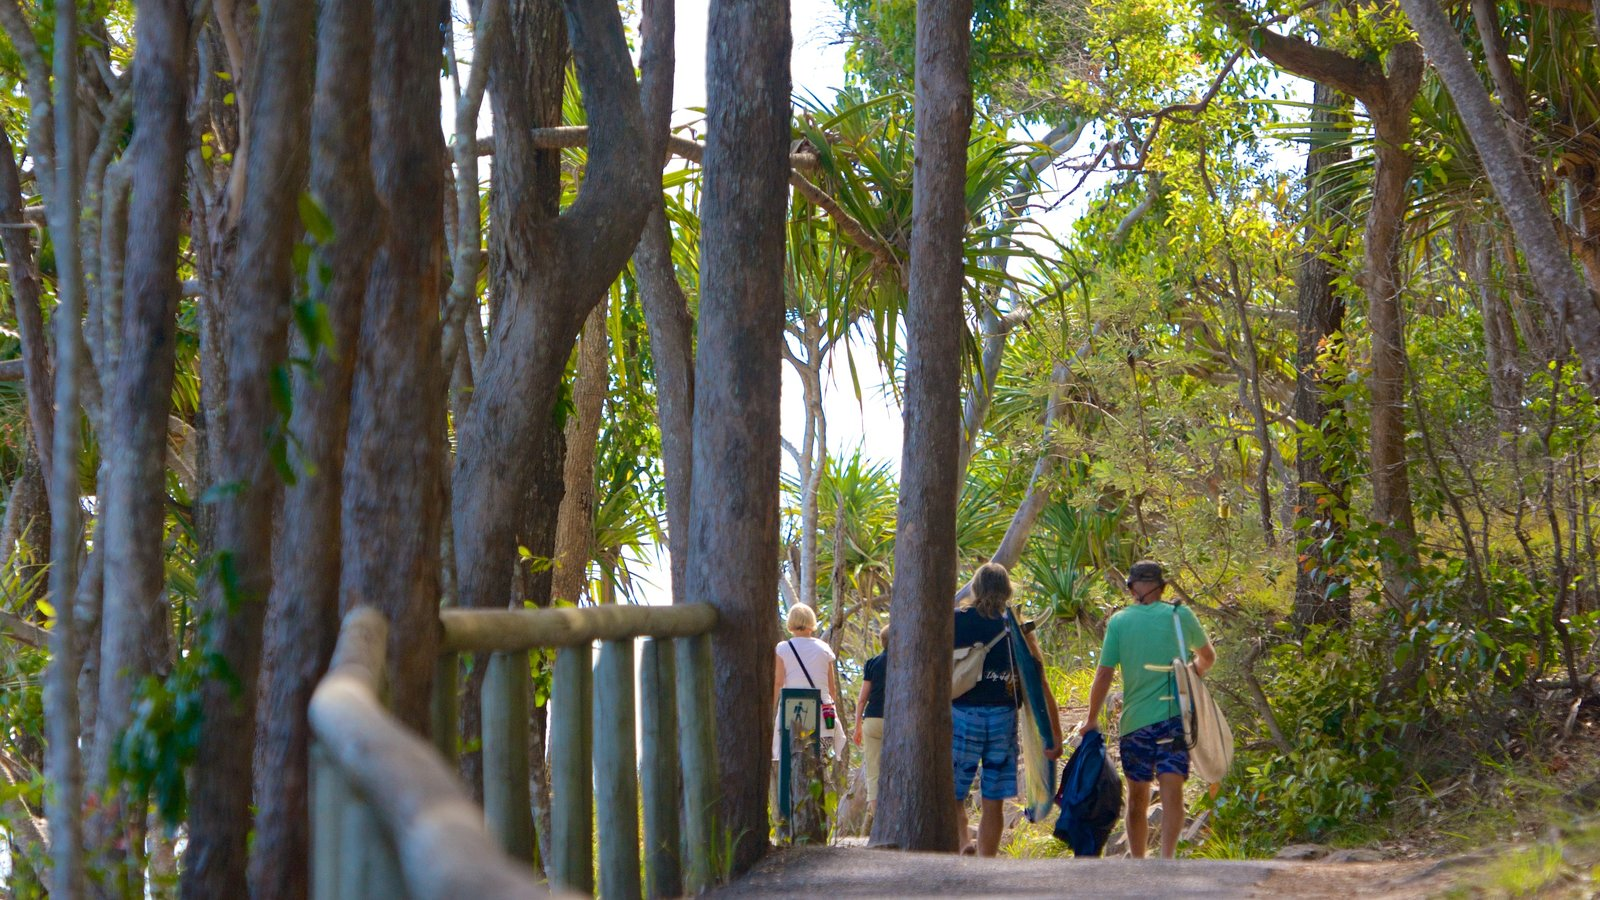 Noosa National Park featuring forests and hiking or walking as well as a small group of people